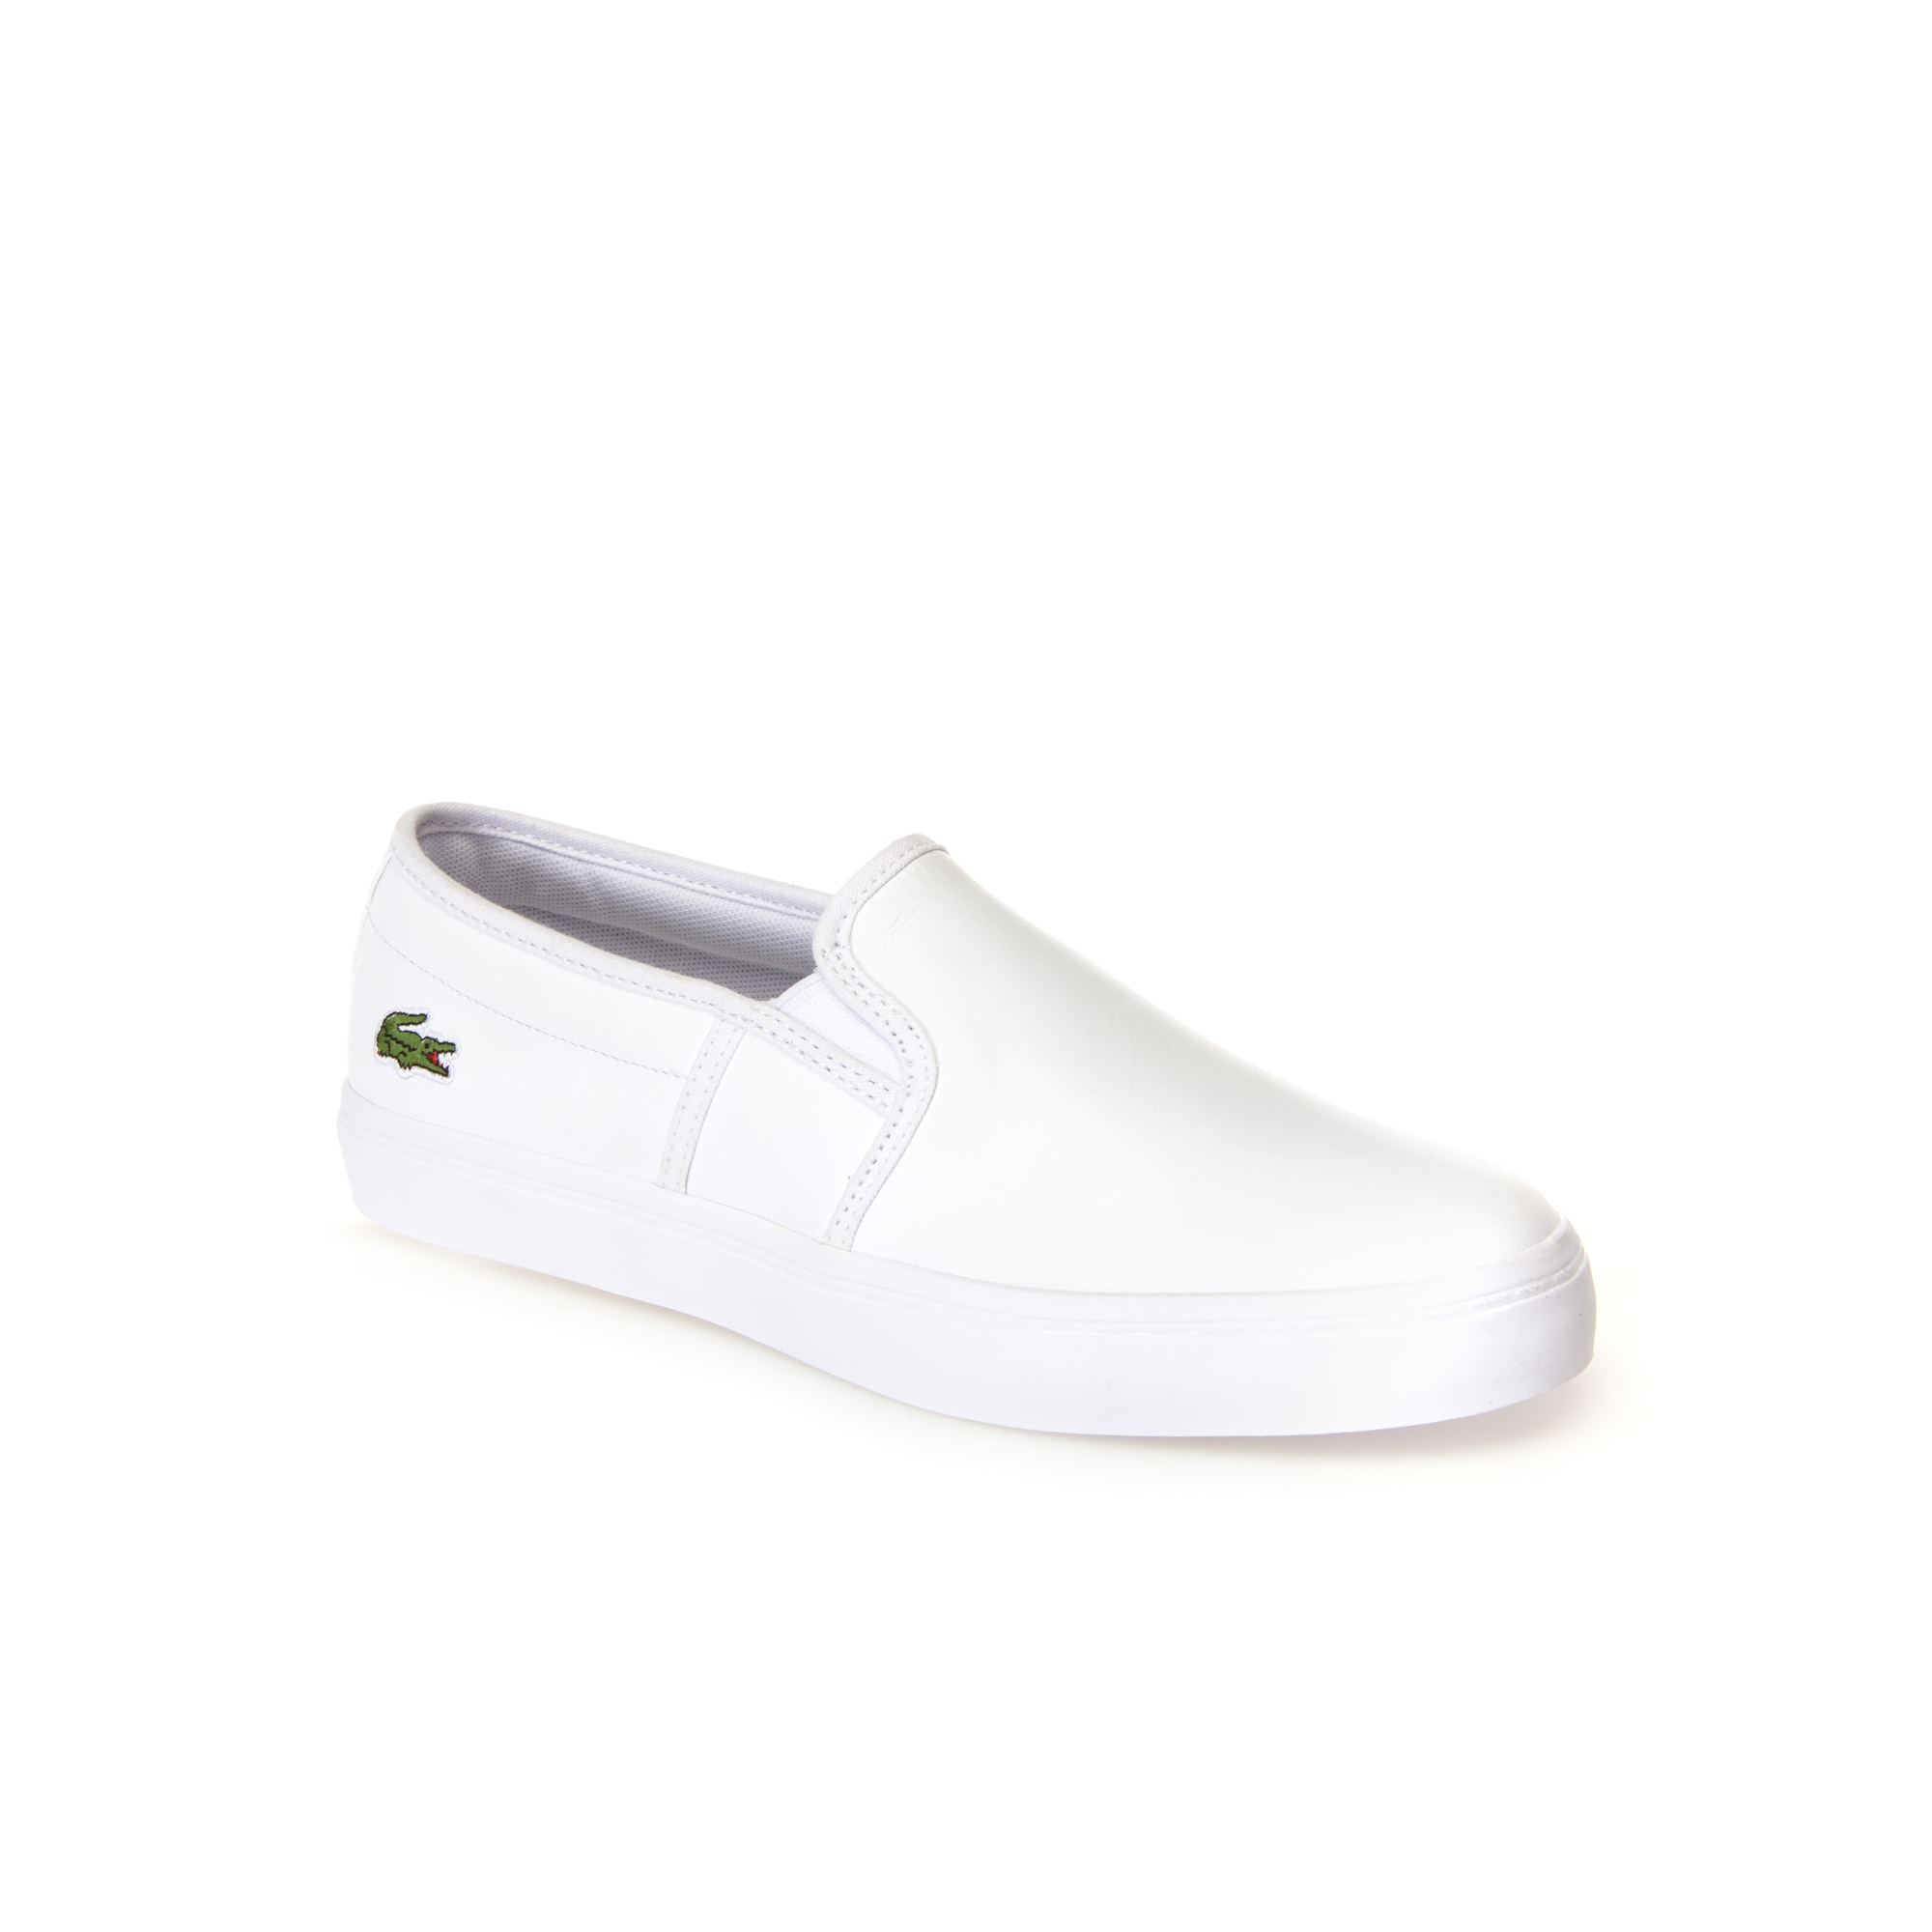 3fb2c2d32797 Lacoste shoes for women  Boots